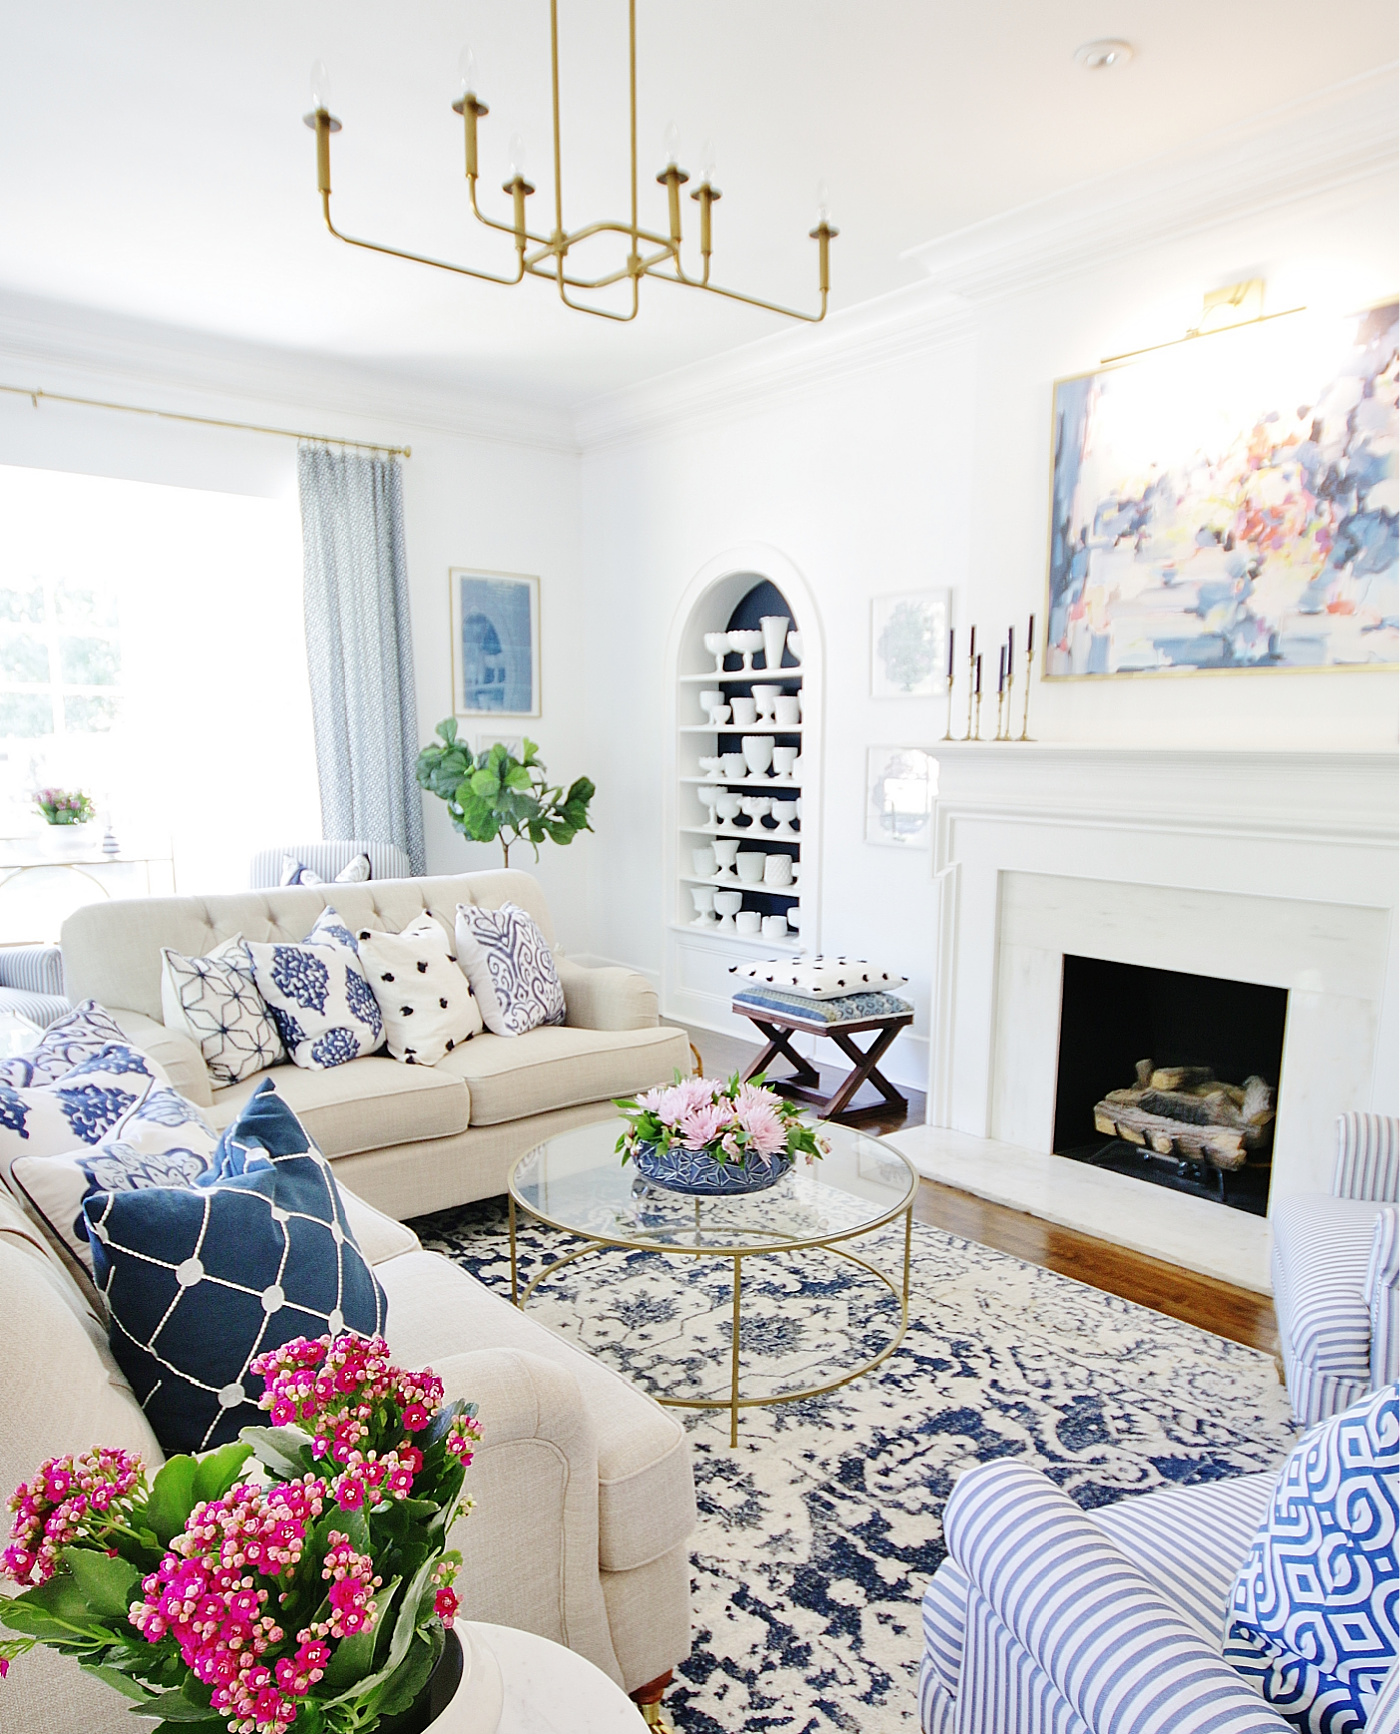 How To Mix Patterns With Blue and White